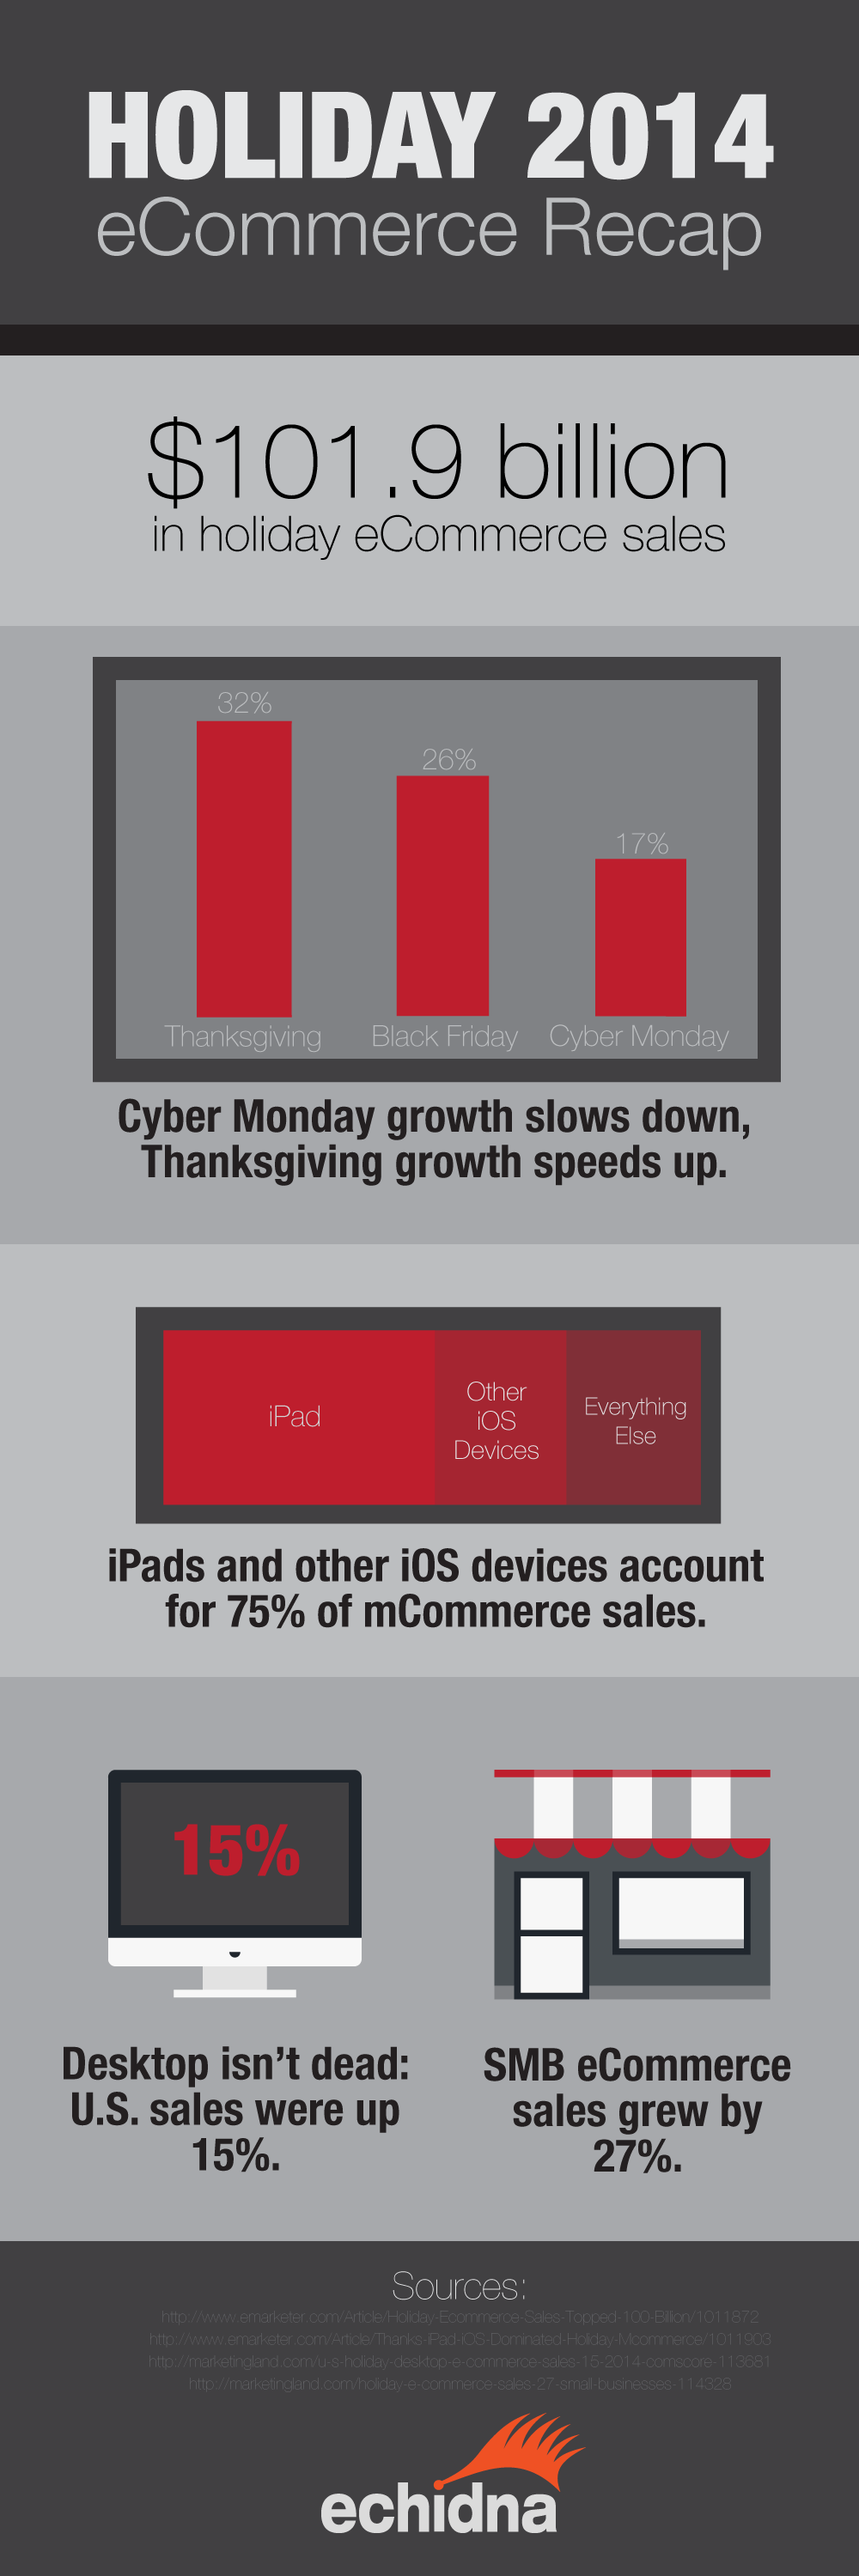 Holiday 2014 eCommerce Infographic Statistics